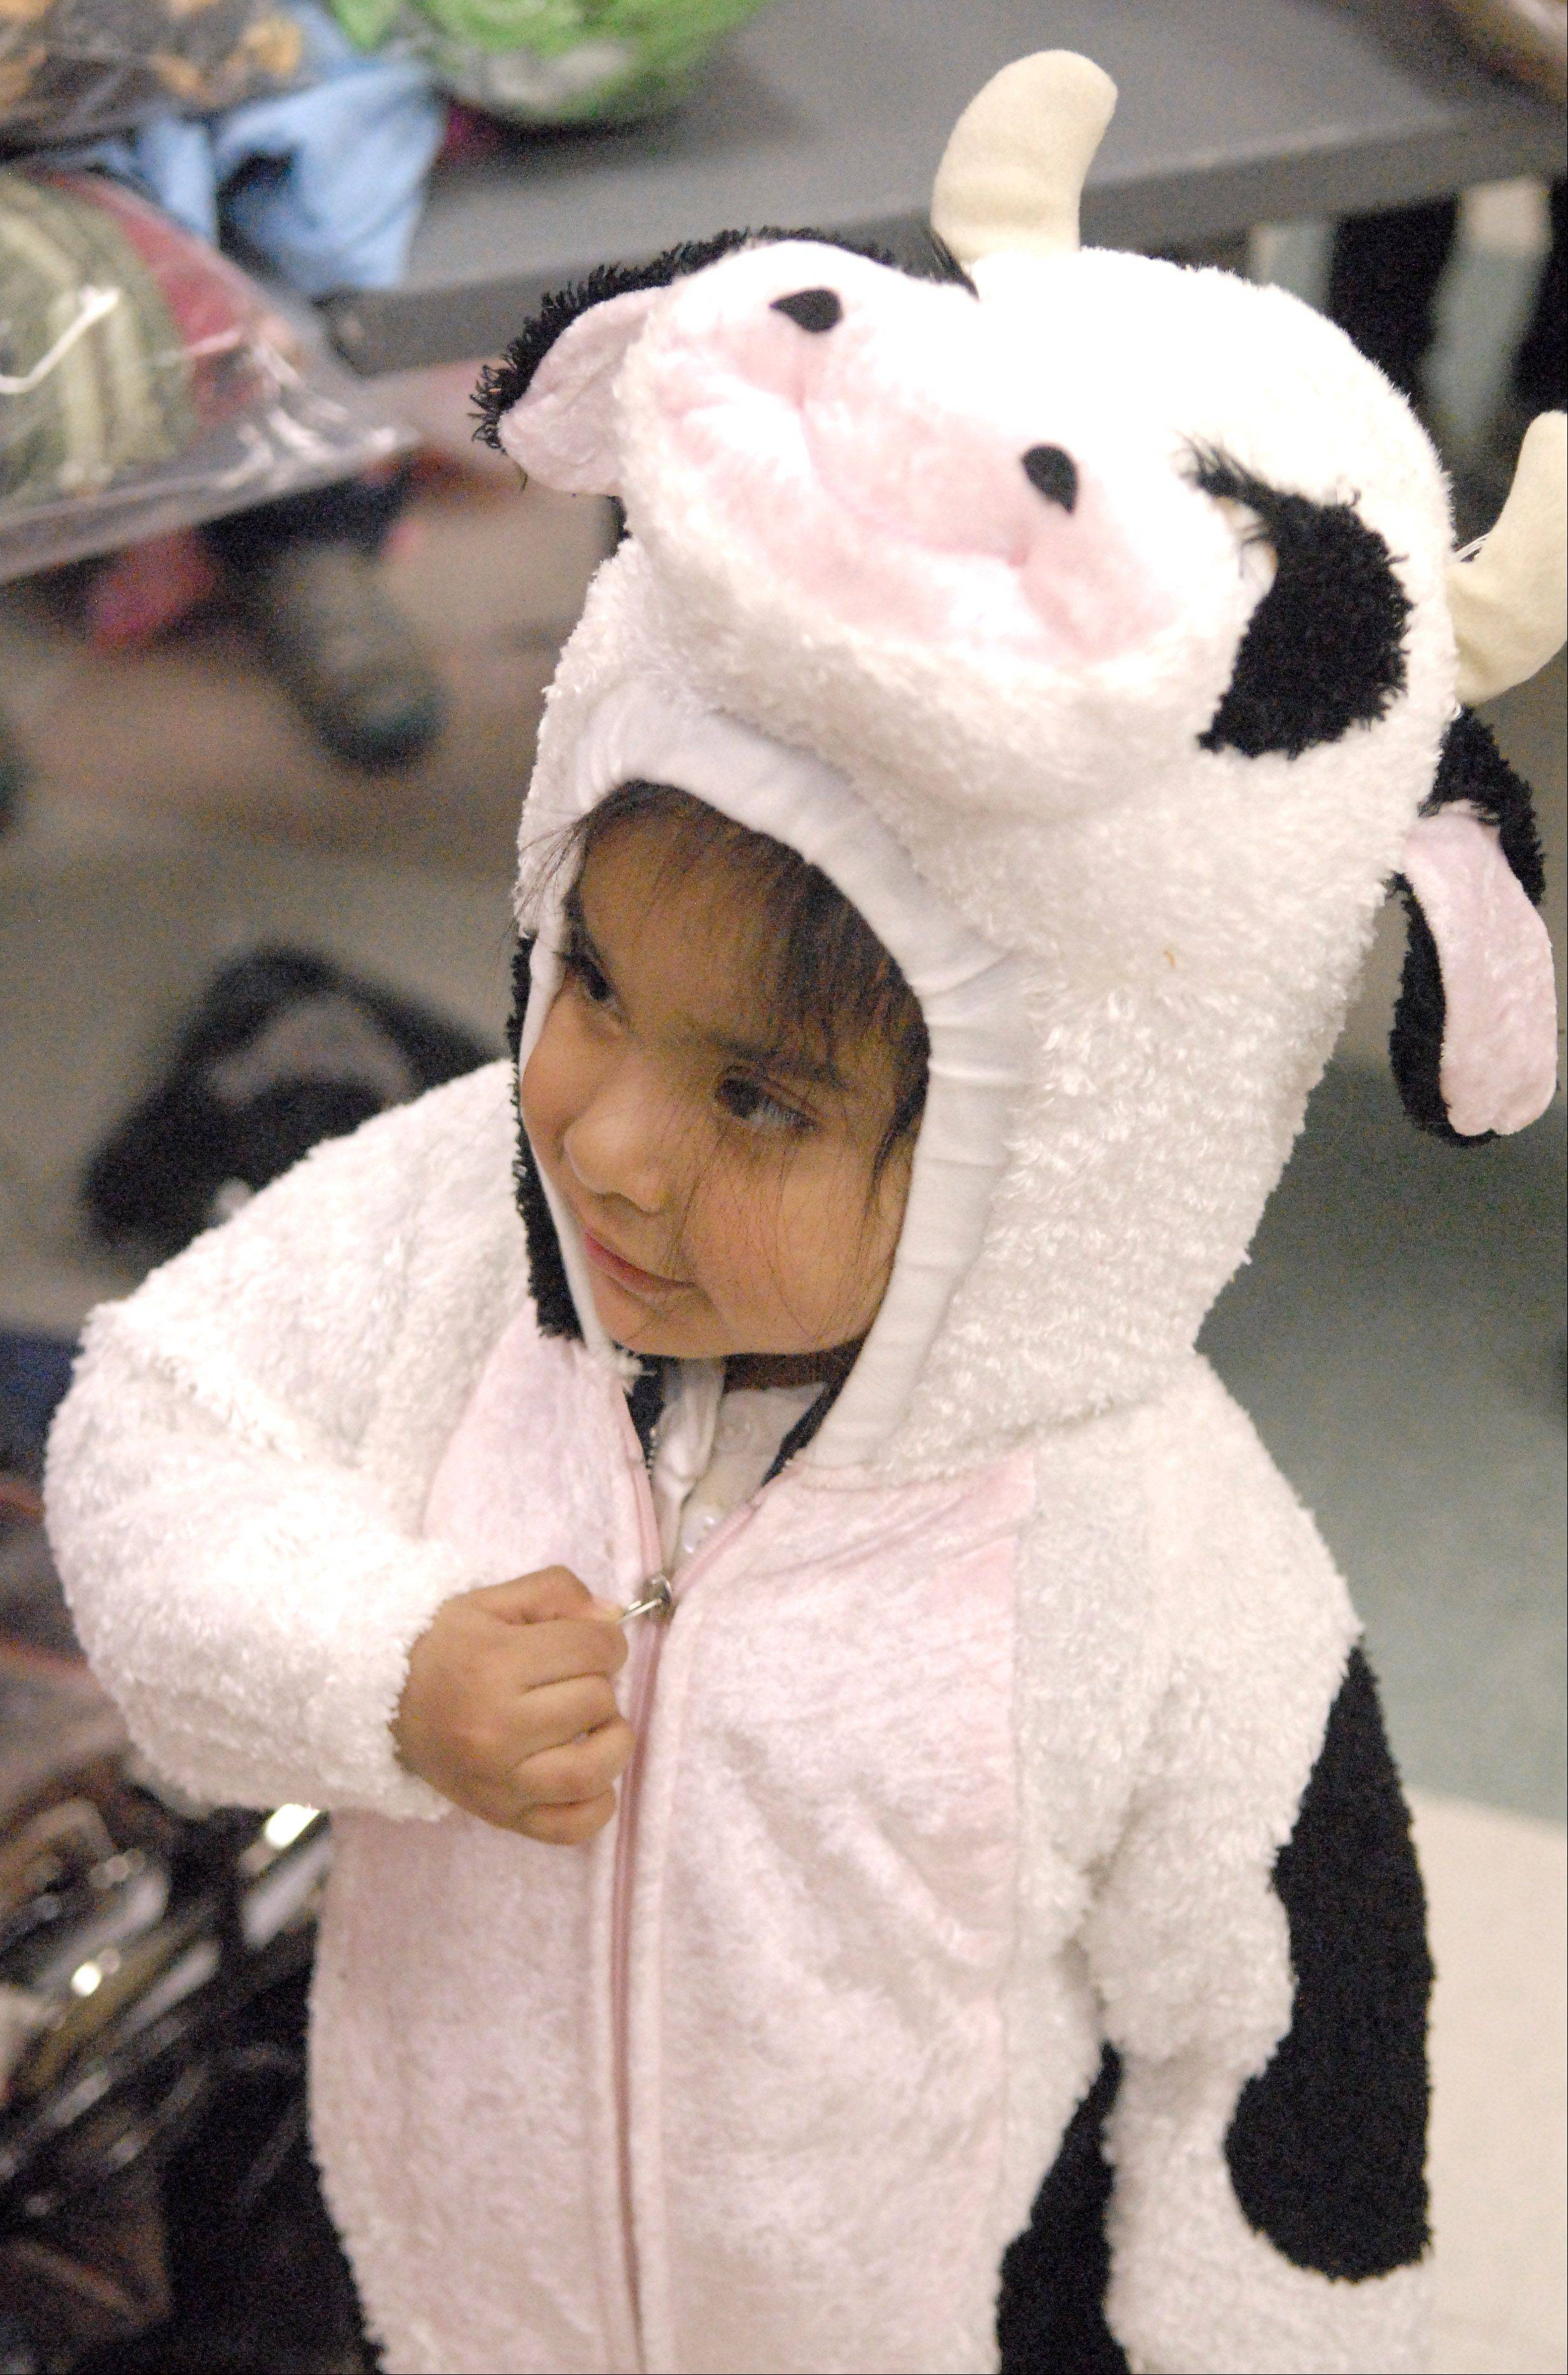 Thais (cq) Salinas, 3, of St. Charles tries on a cow costume for size at the Pottawatomie Community Center on Wednesday, October 19. Over 500 costumes were available to kids in need at the event. It is the fifth year for the event organized by St. Charles resident, Wendy Gruber.